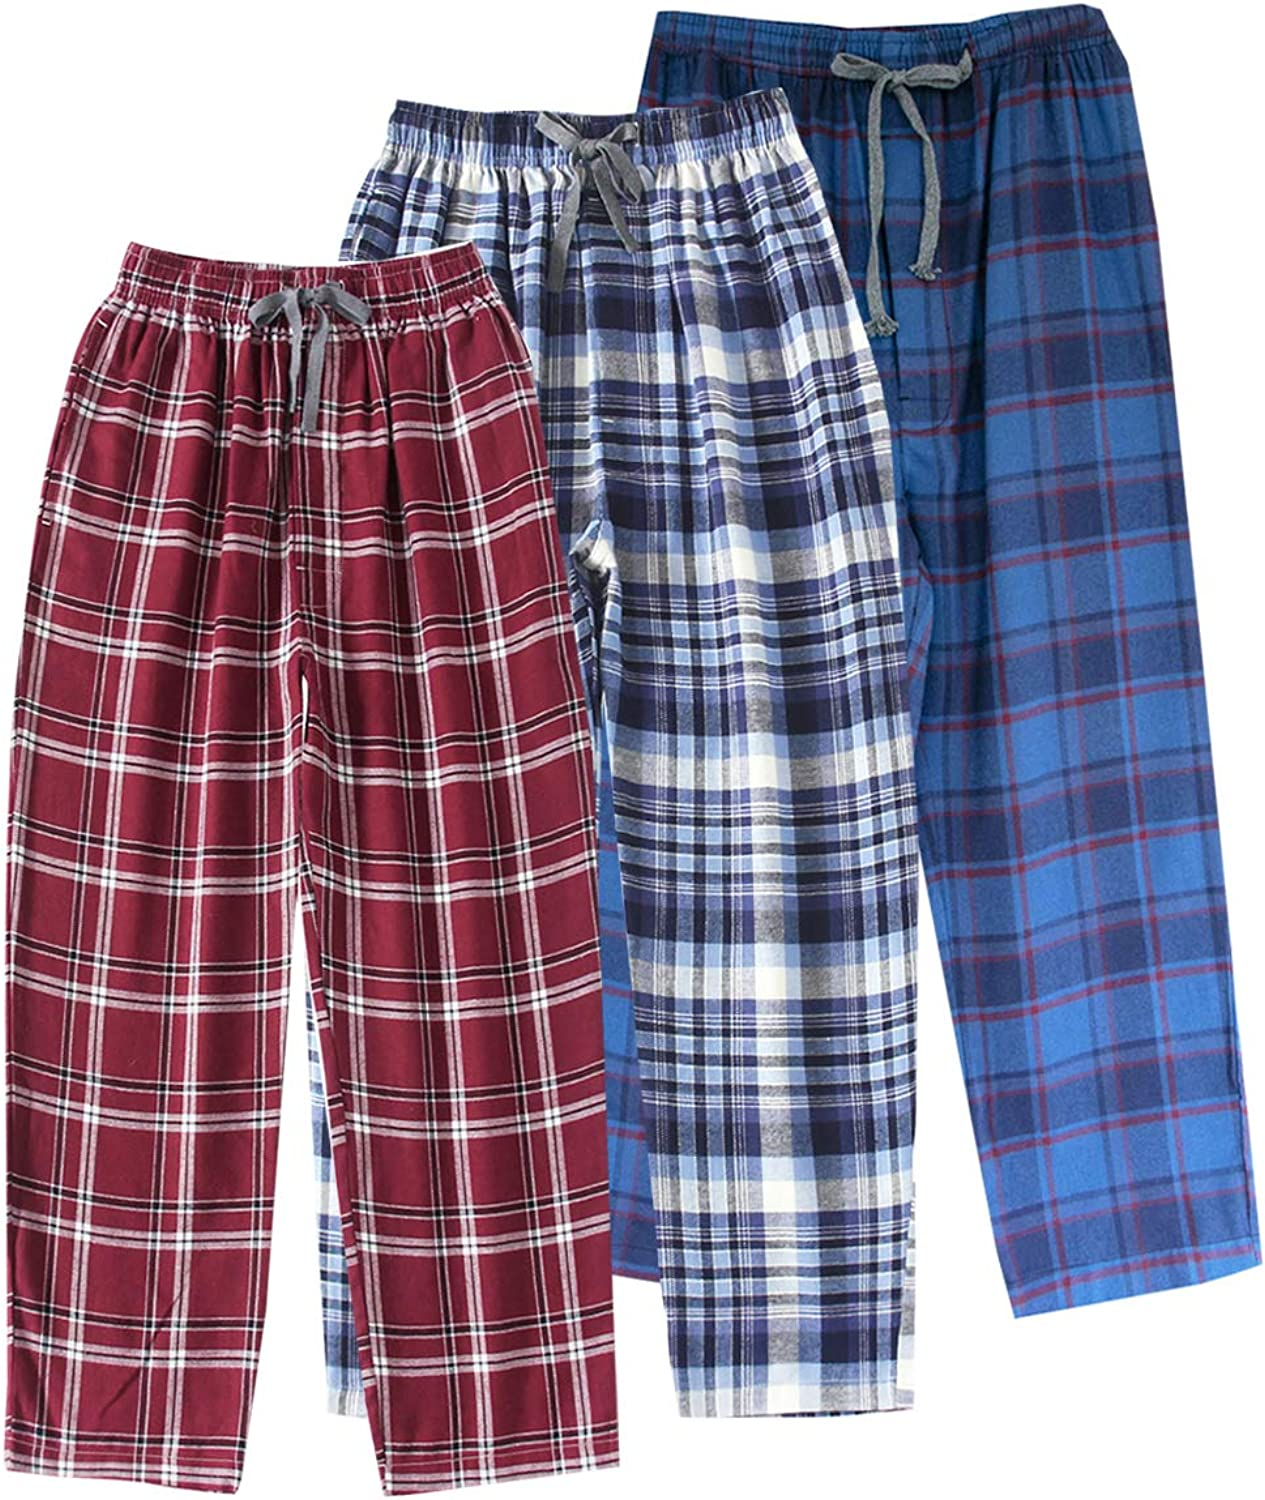 Spring/&Gege Boys Plaid Soft Lightweight 100/% Cotton Flannel Pajamas Pants